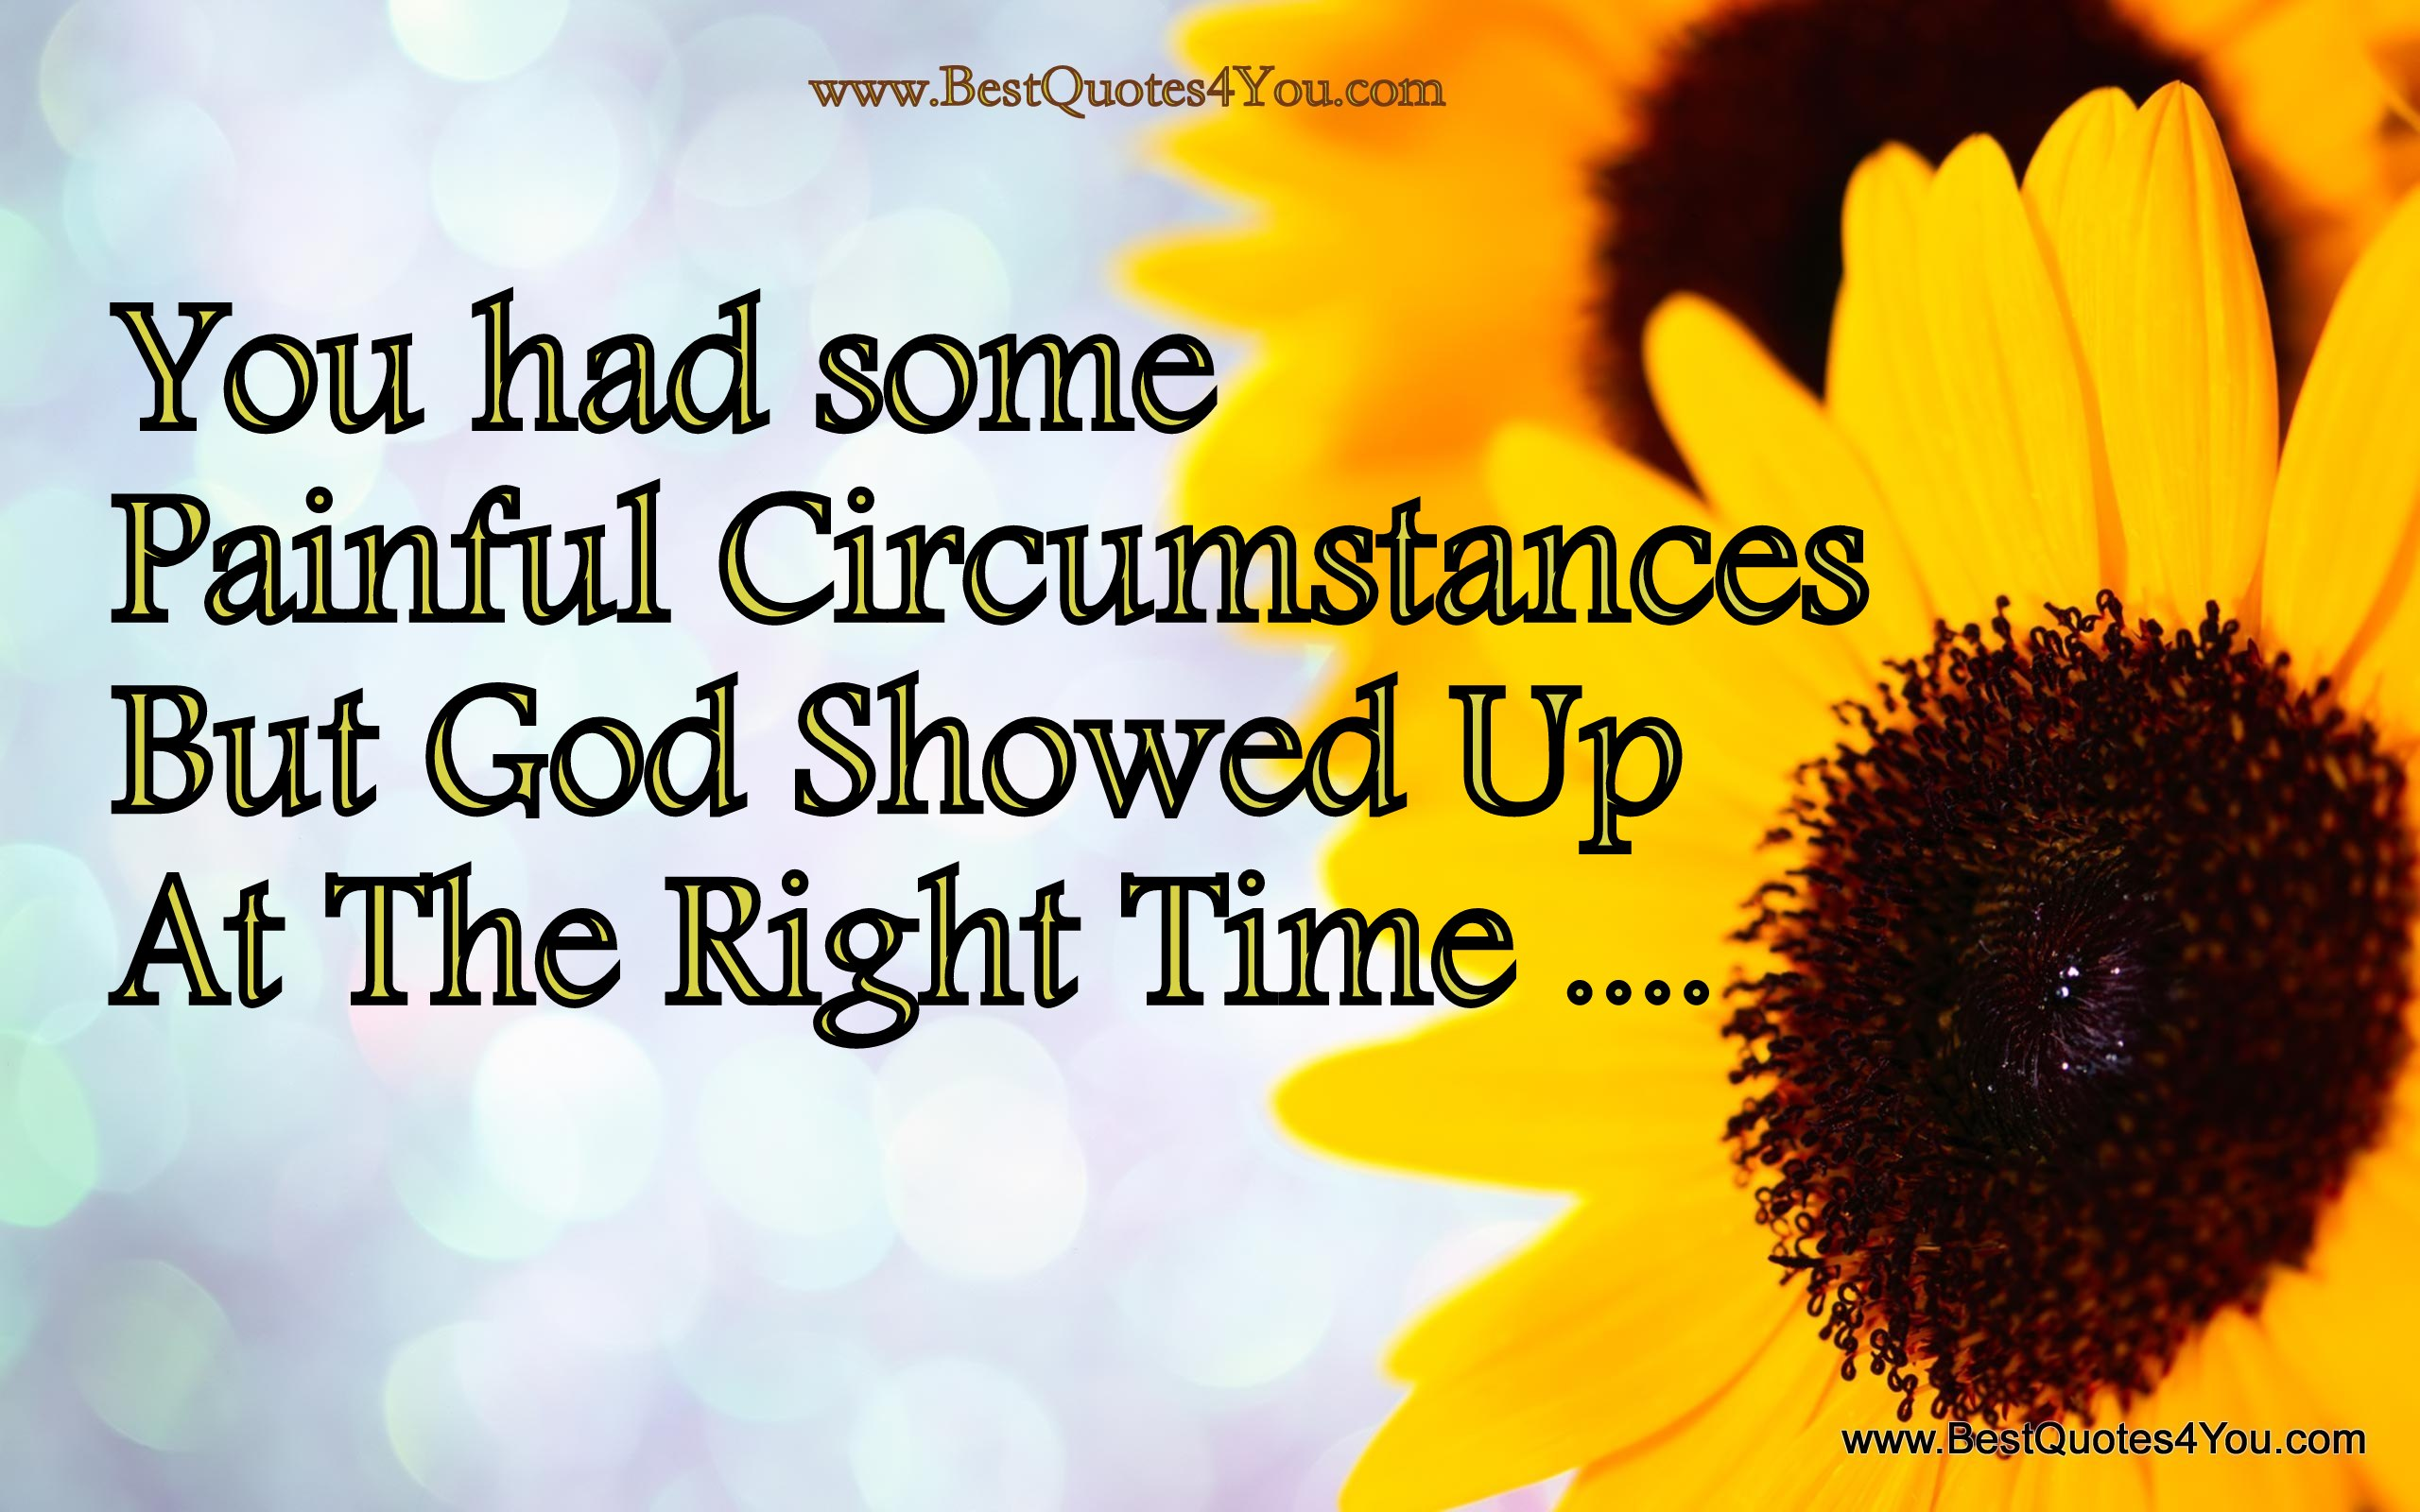 You had some painful circumstances. But god showed up at the right time.